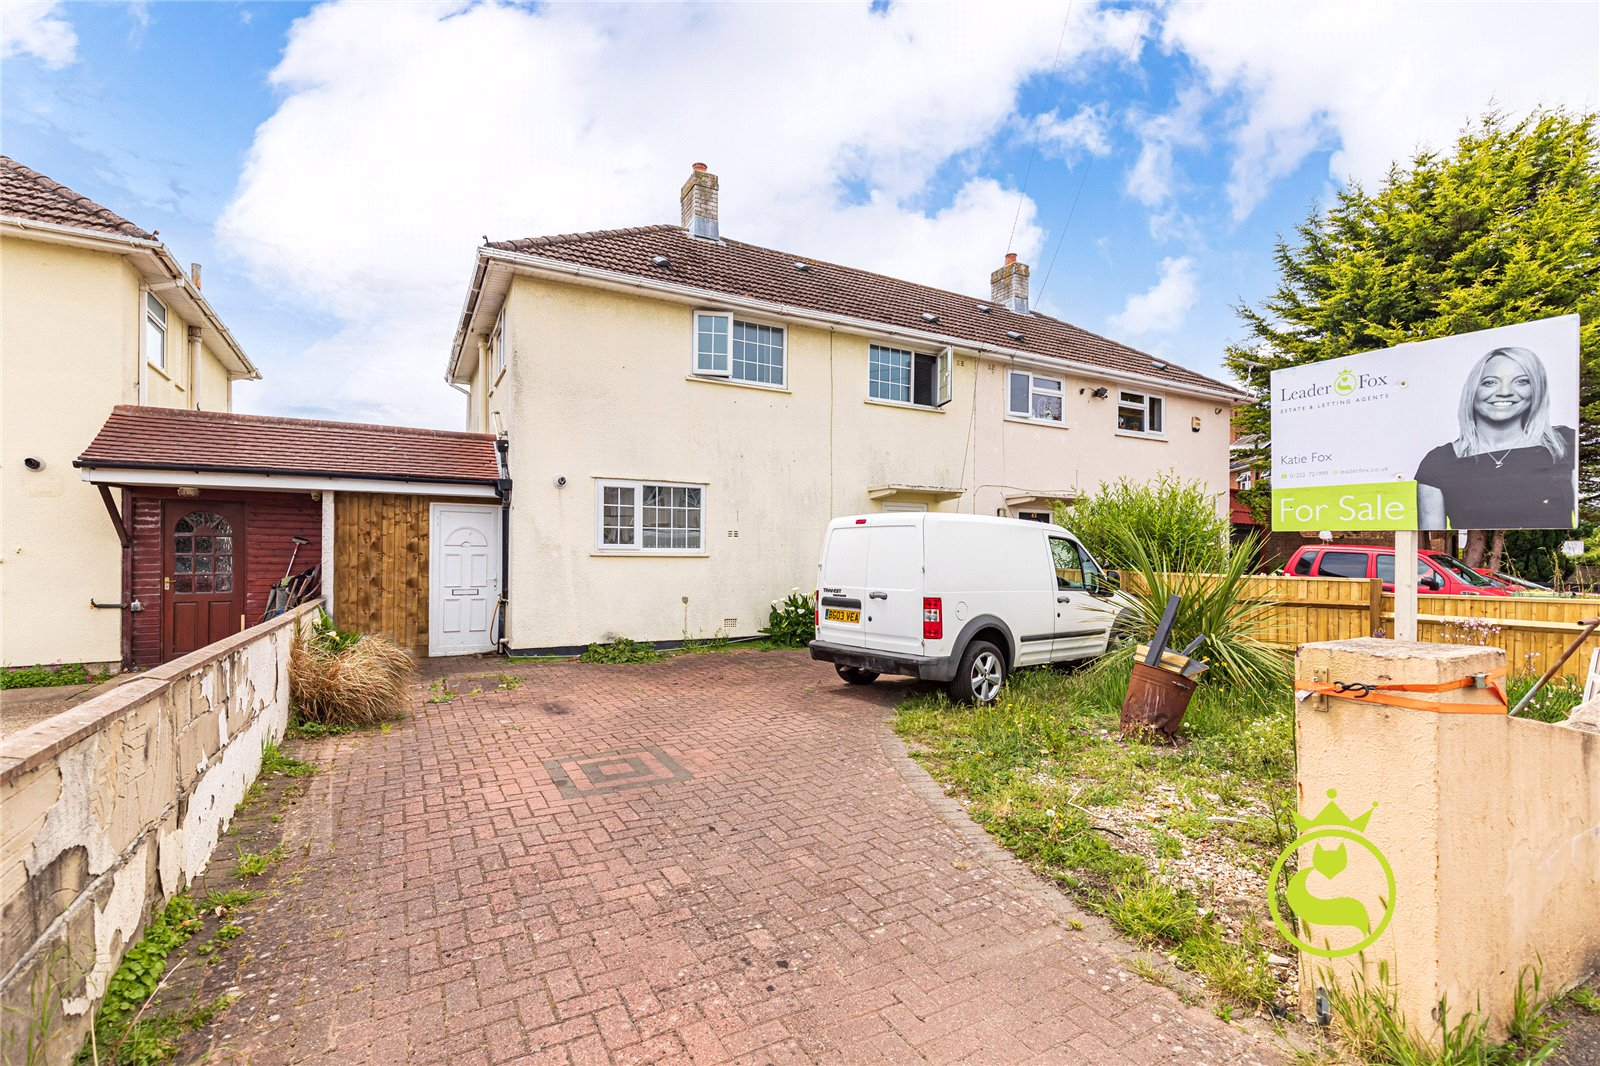 3 bed house for sale in Raleigh Road, Wallisdown 0